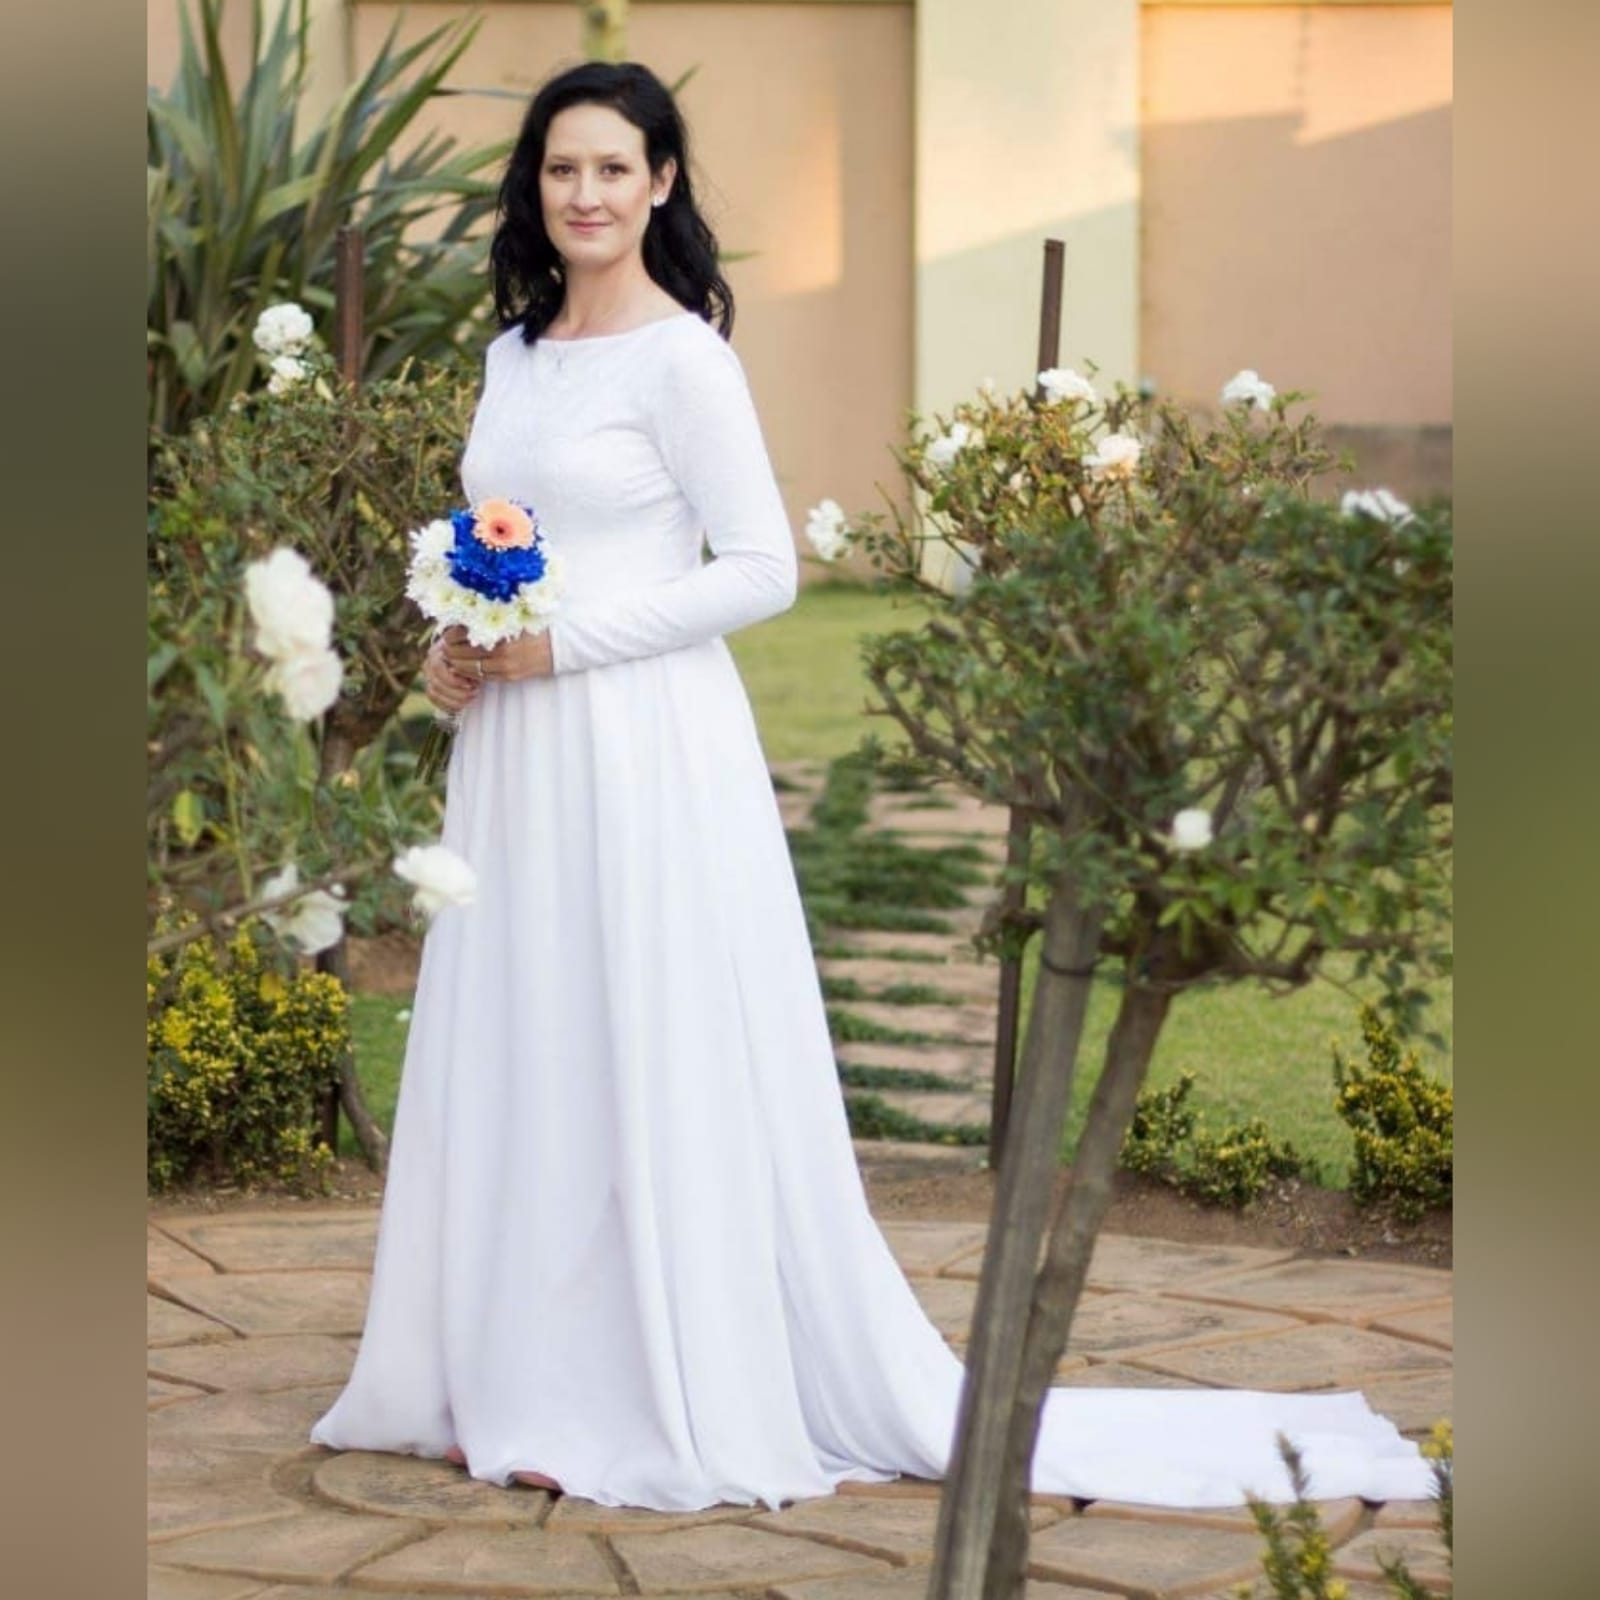 2 piece white flowy simple wedding dress 1 2 piece white flowy simple wedding dress. A bodysuit fitted lace top with long sleeves and jewel neckline. Flowy wide long skirt with a chiffon layer and a long train.